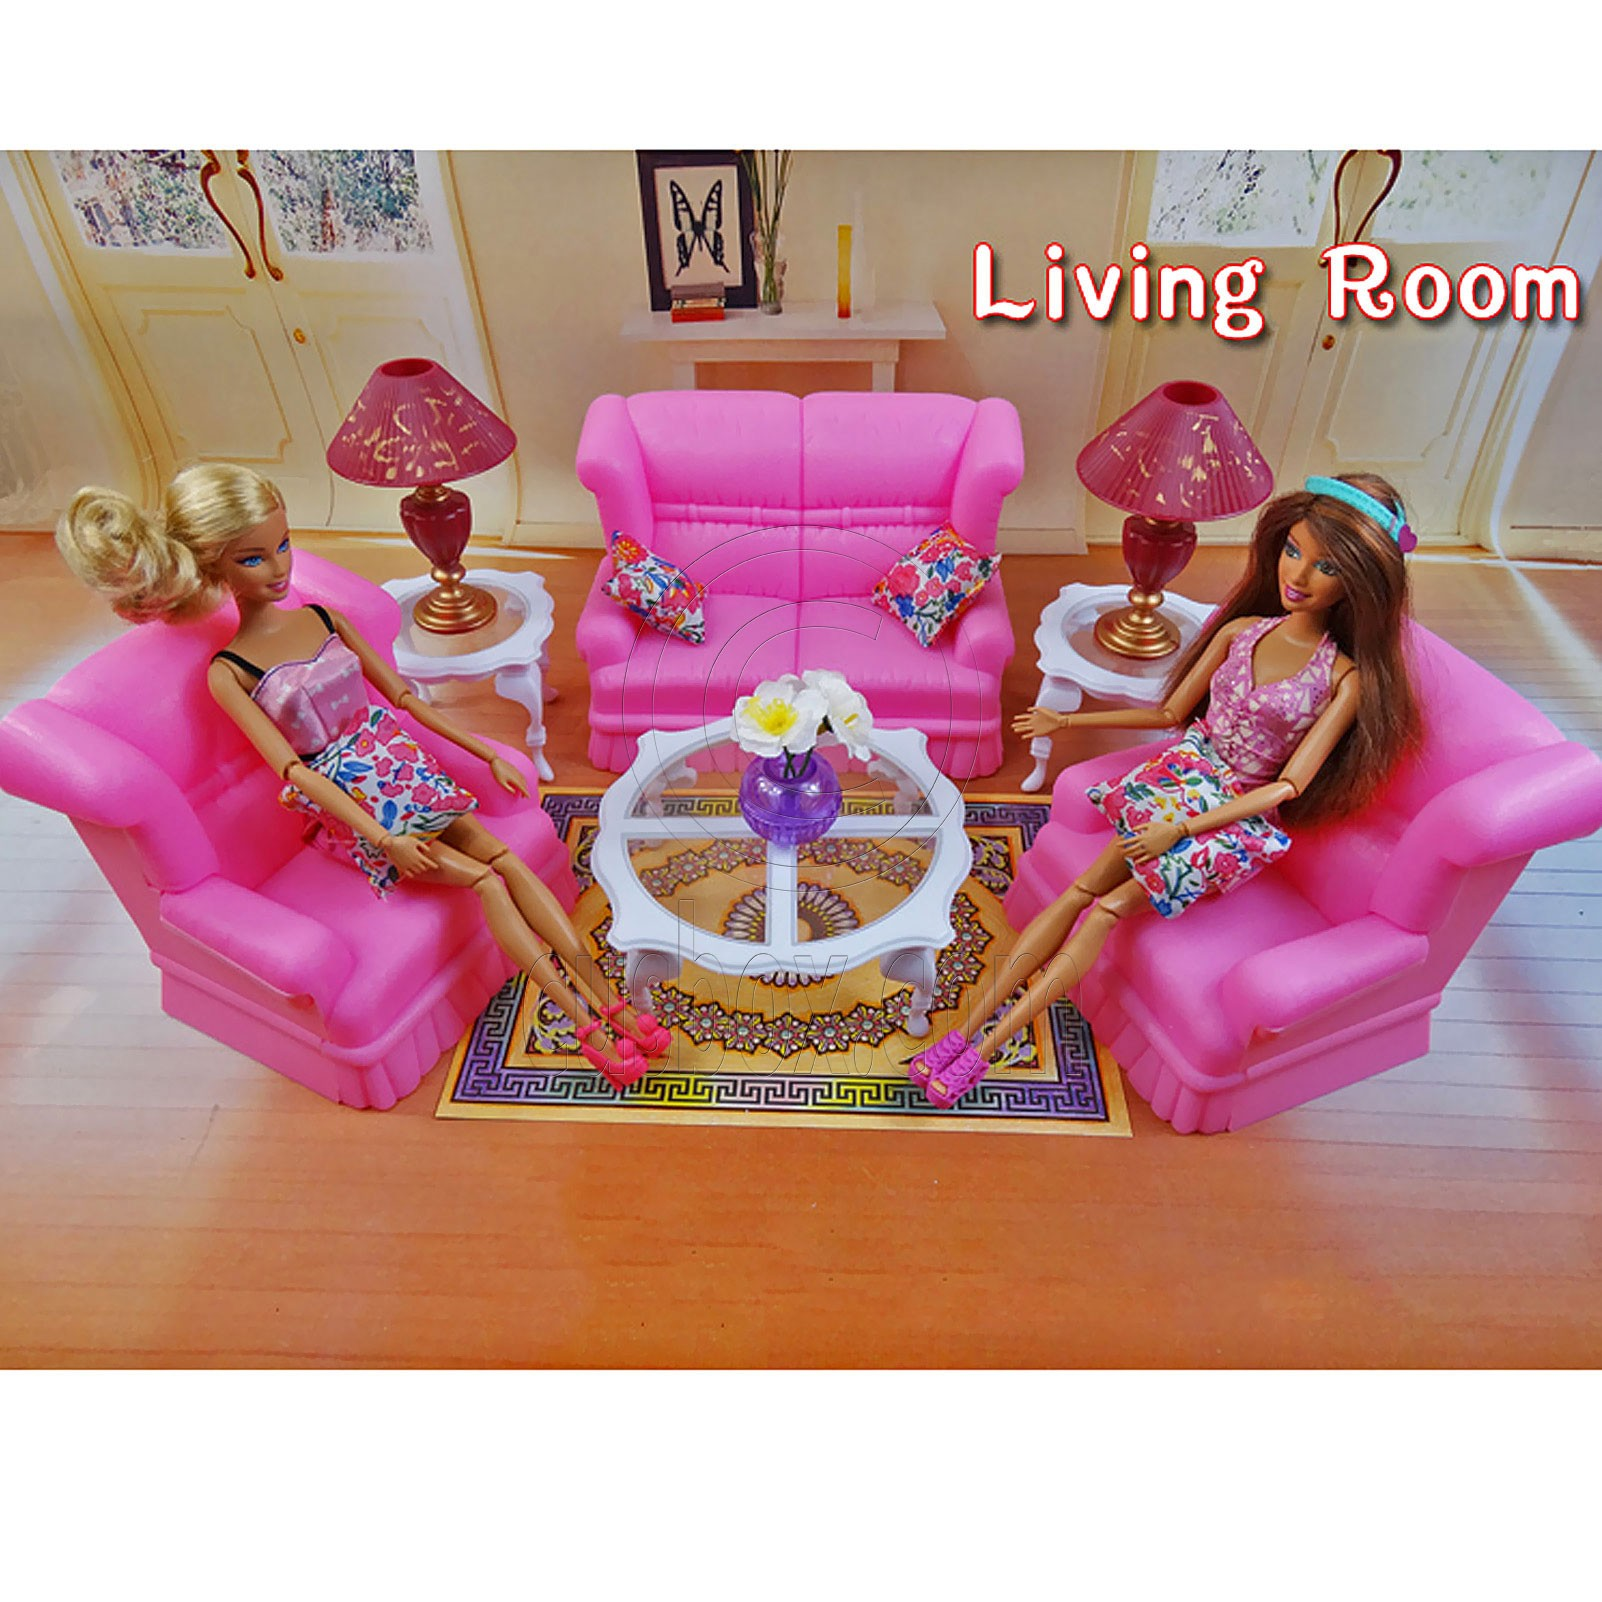 Living Room Sofa Table Lamp Furniture Play Set for Barbie Monster